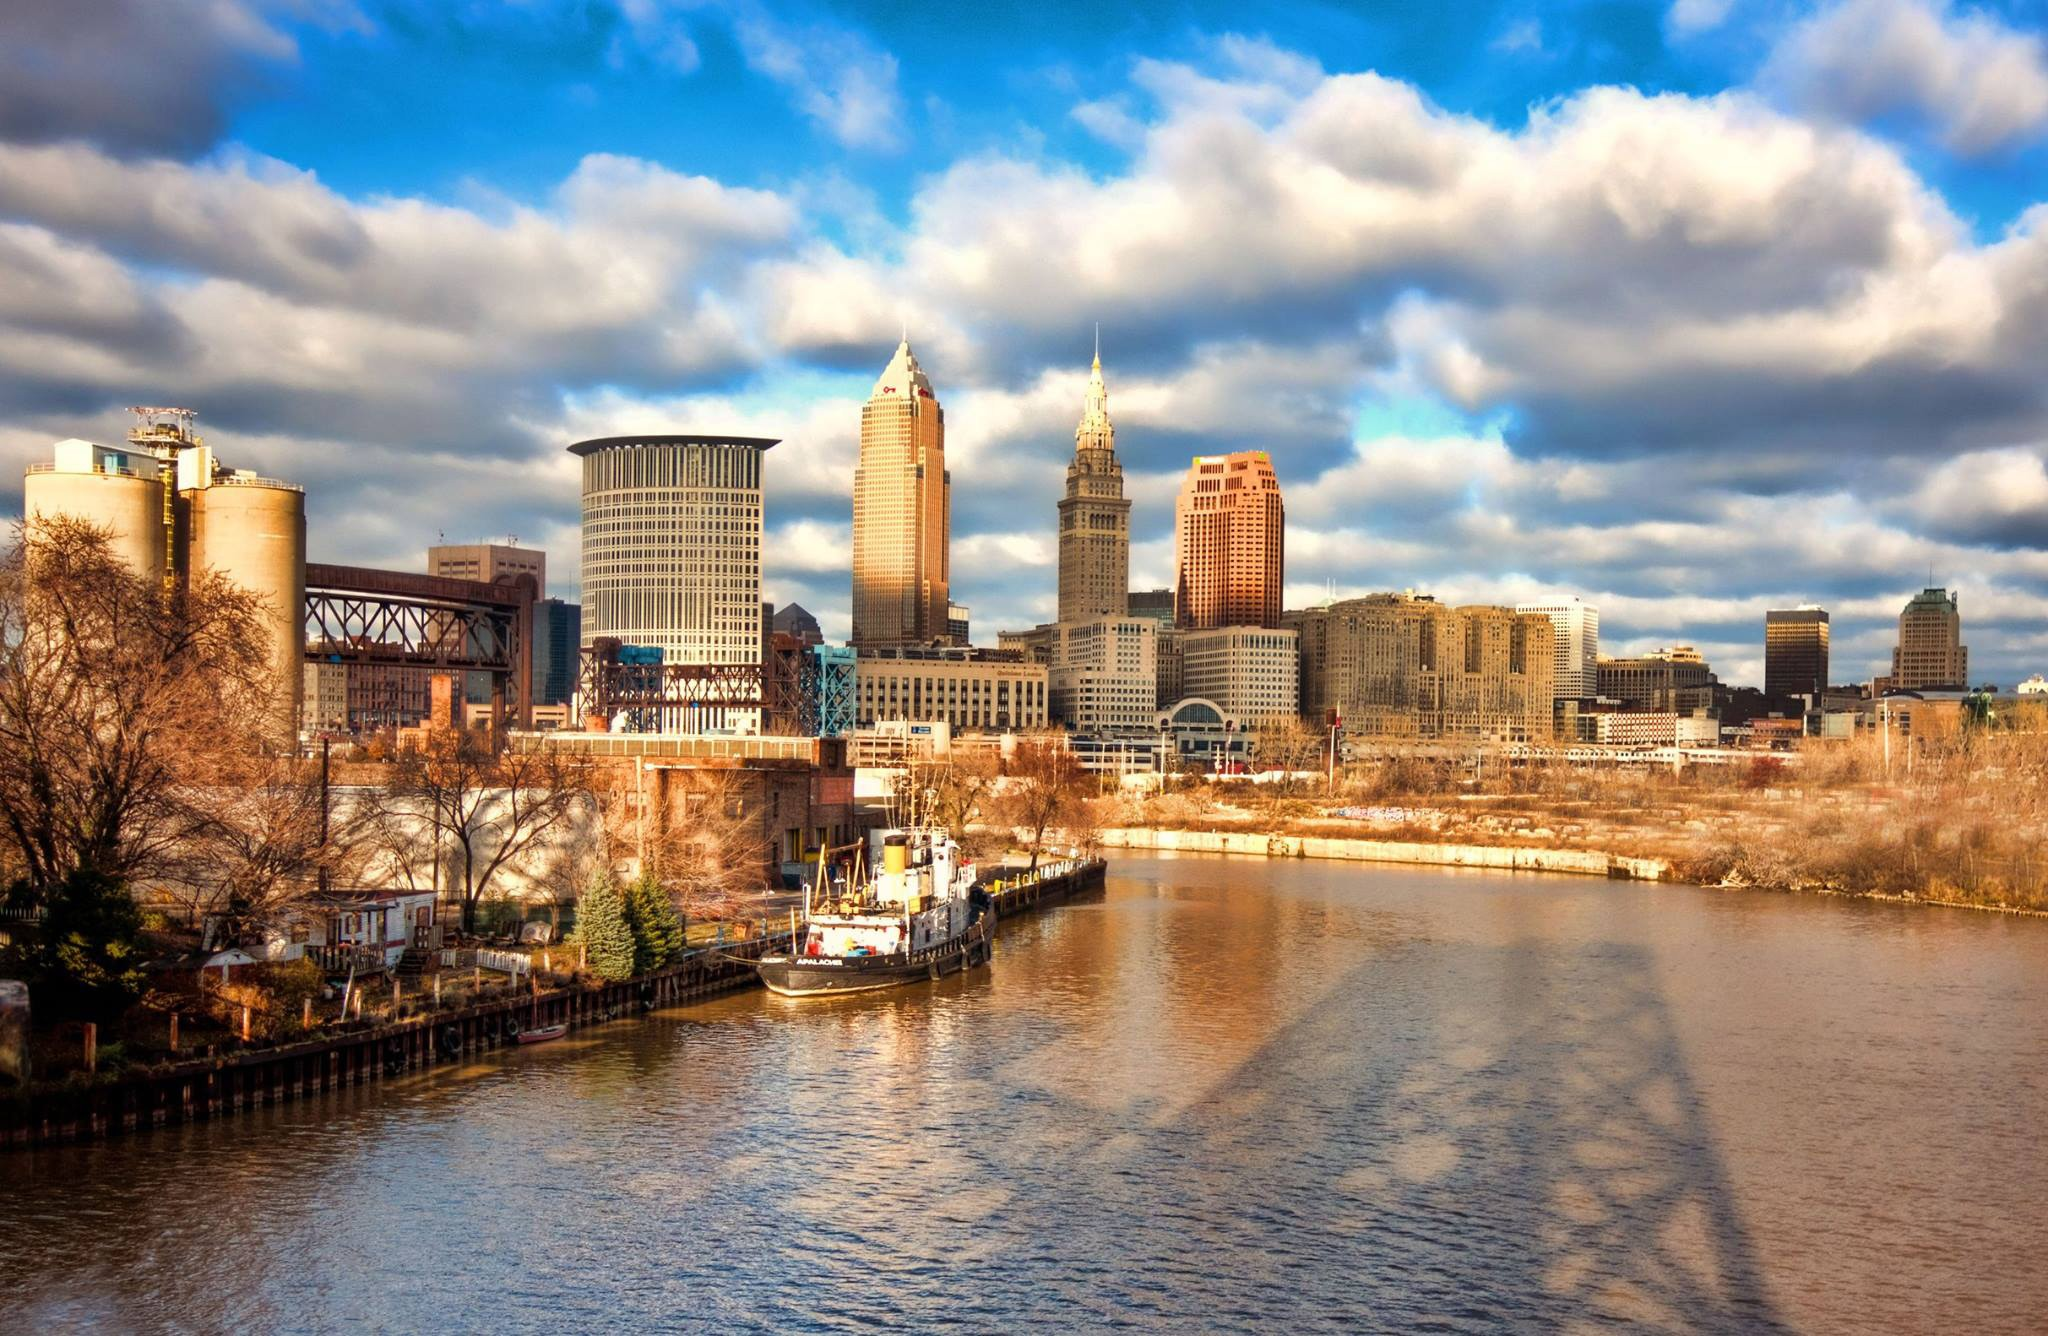 downtown cleveland ohio wallpaper - photo #10